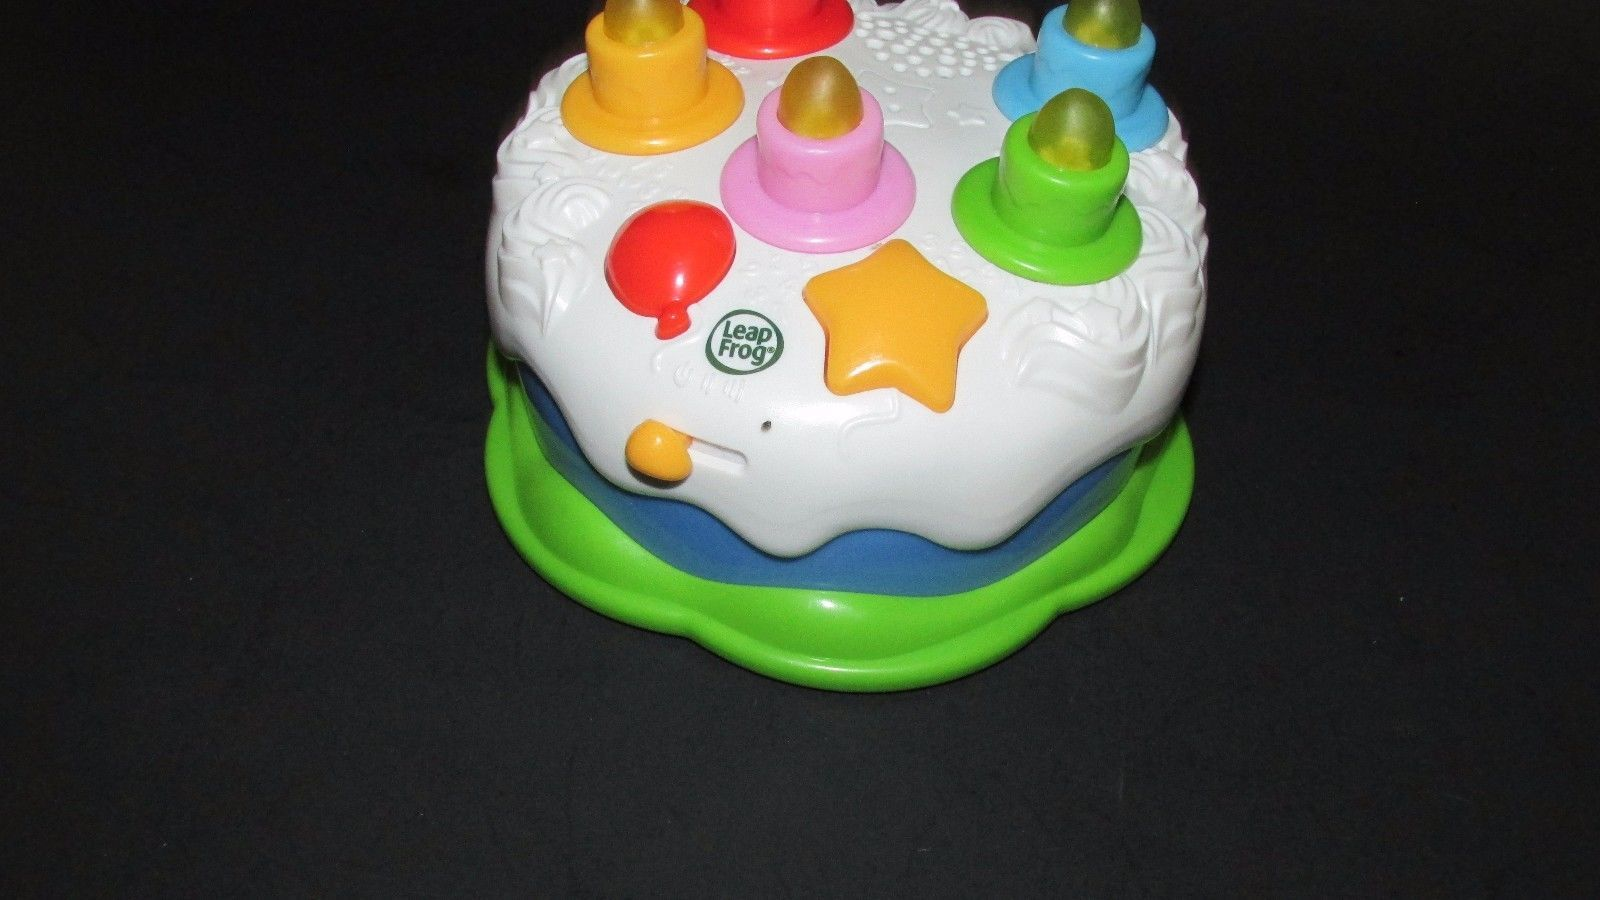 Leapfrog Birthday Cake Counting Blow Out And Similar Items